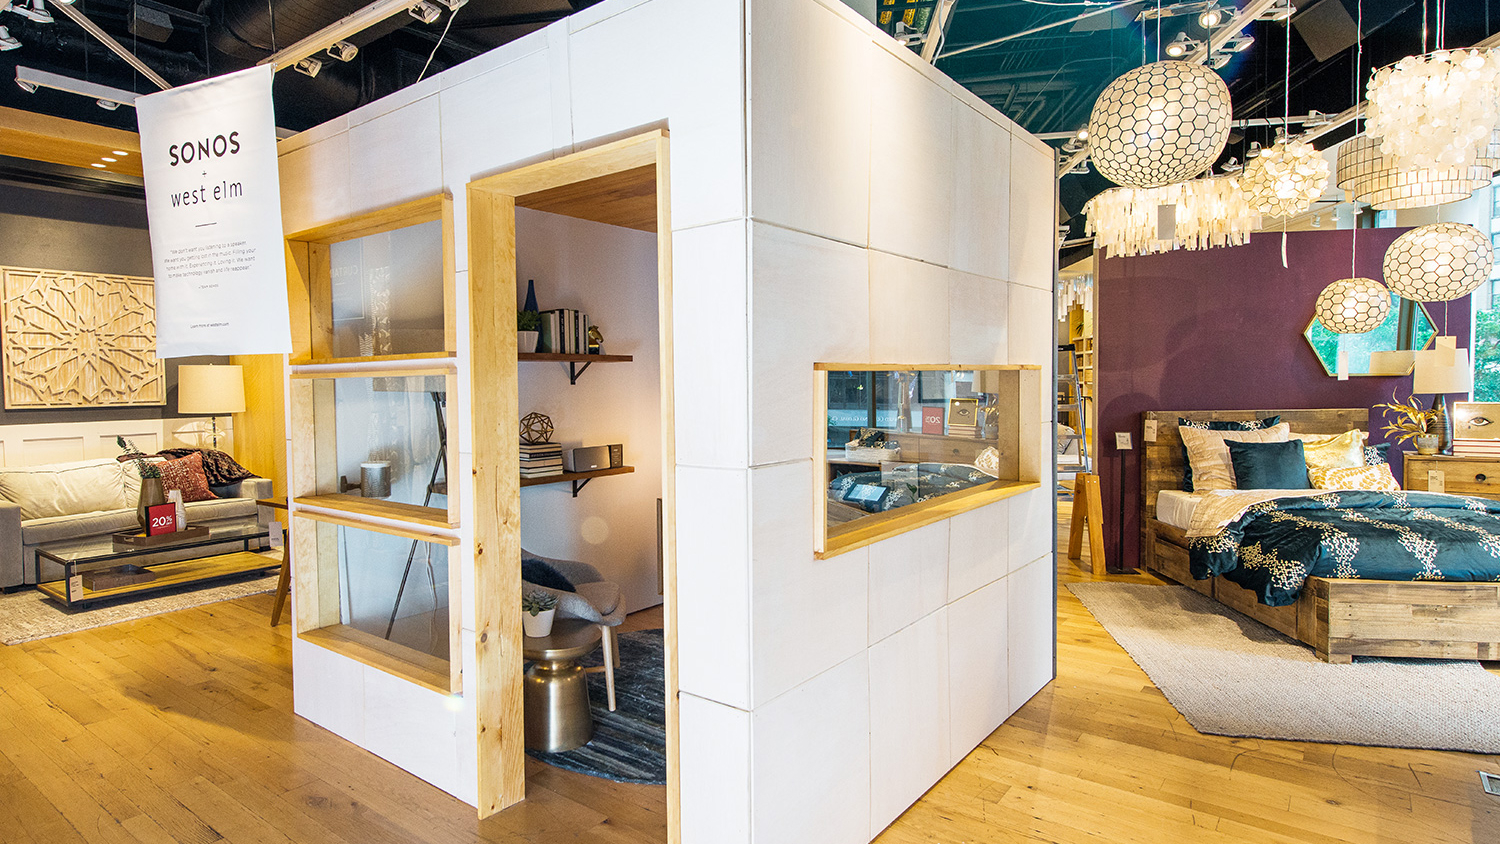 The Sonos Listening Lab in a West Elm Store